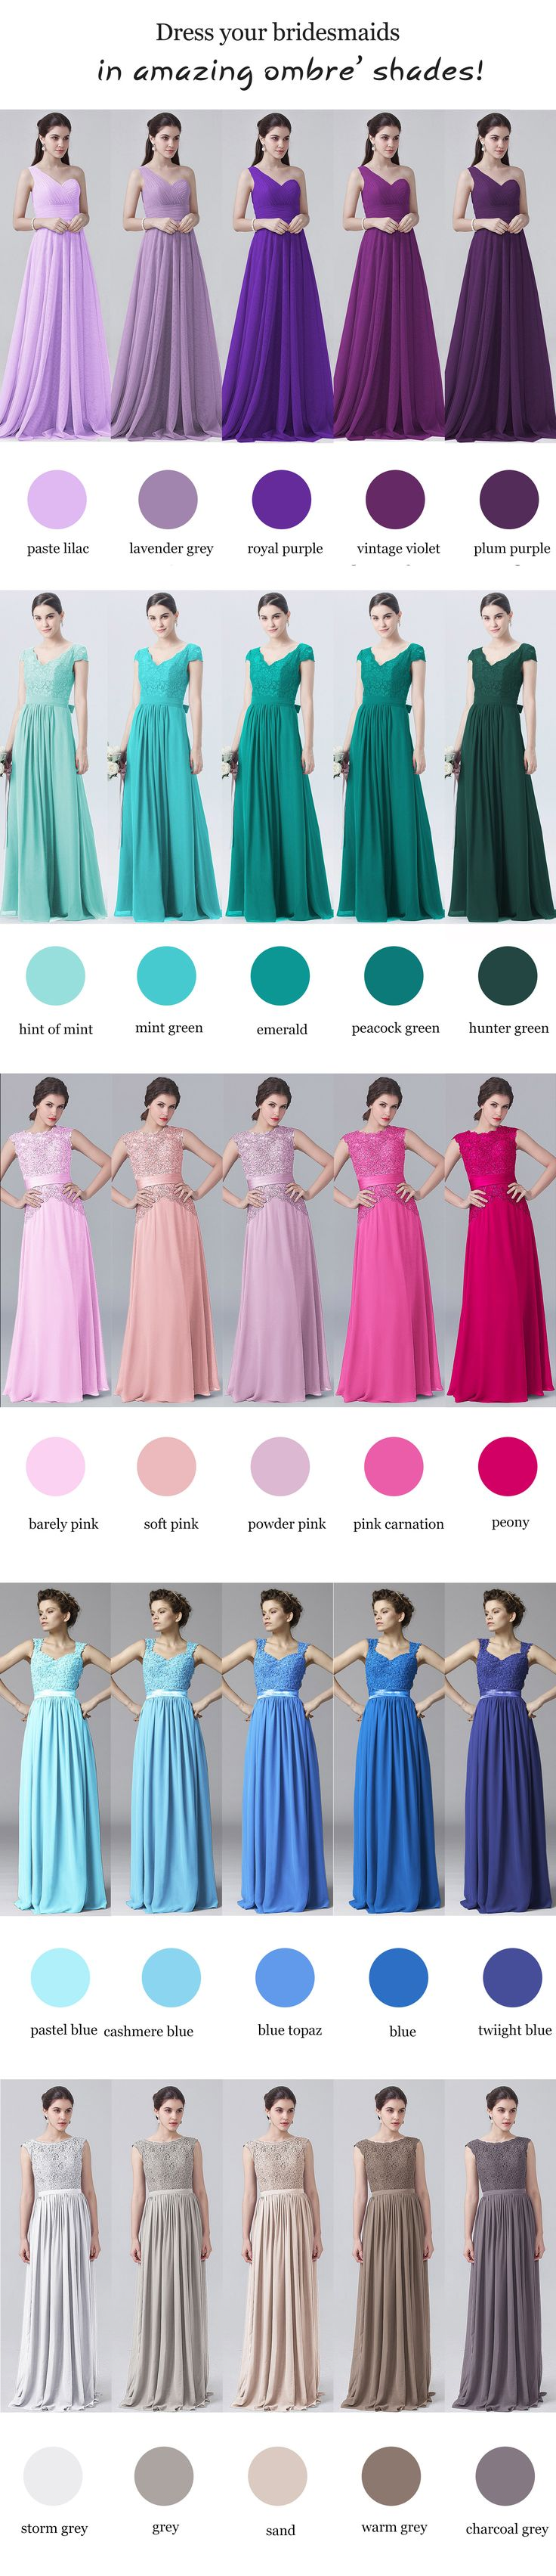 Bridesmaids Dresses Spring 2017 Colors – fashion dresses